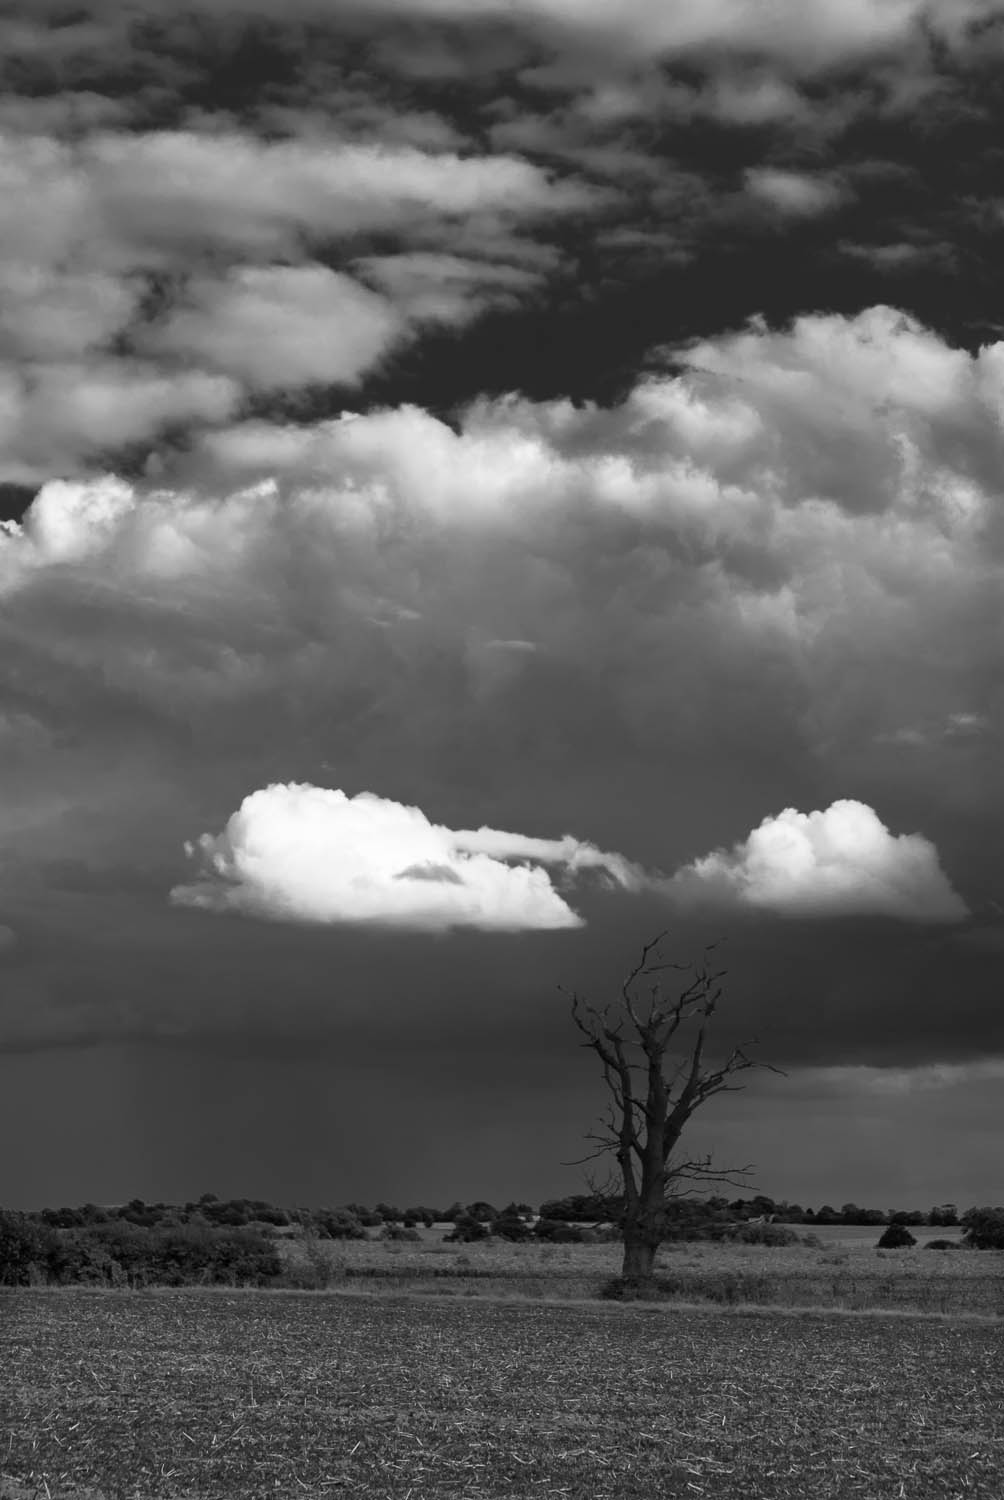 A black and white photograph of a plowed field, clouds and a dead tree in Matching, Essex